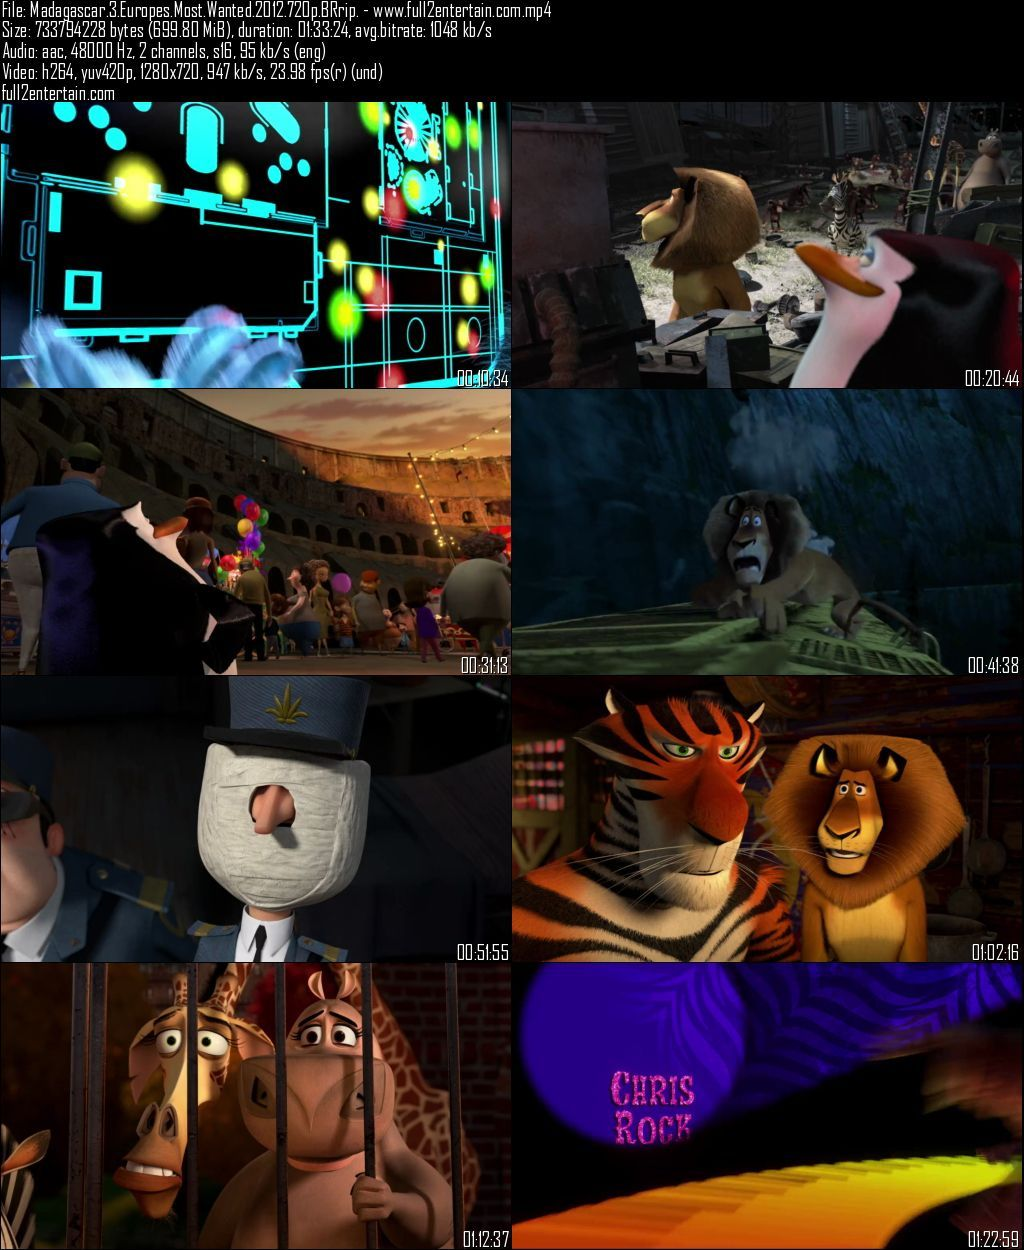 Madagascar 3: Europe's Most Wanted 2012 Full Movie Free Download HD